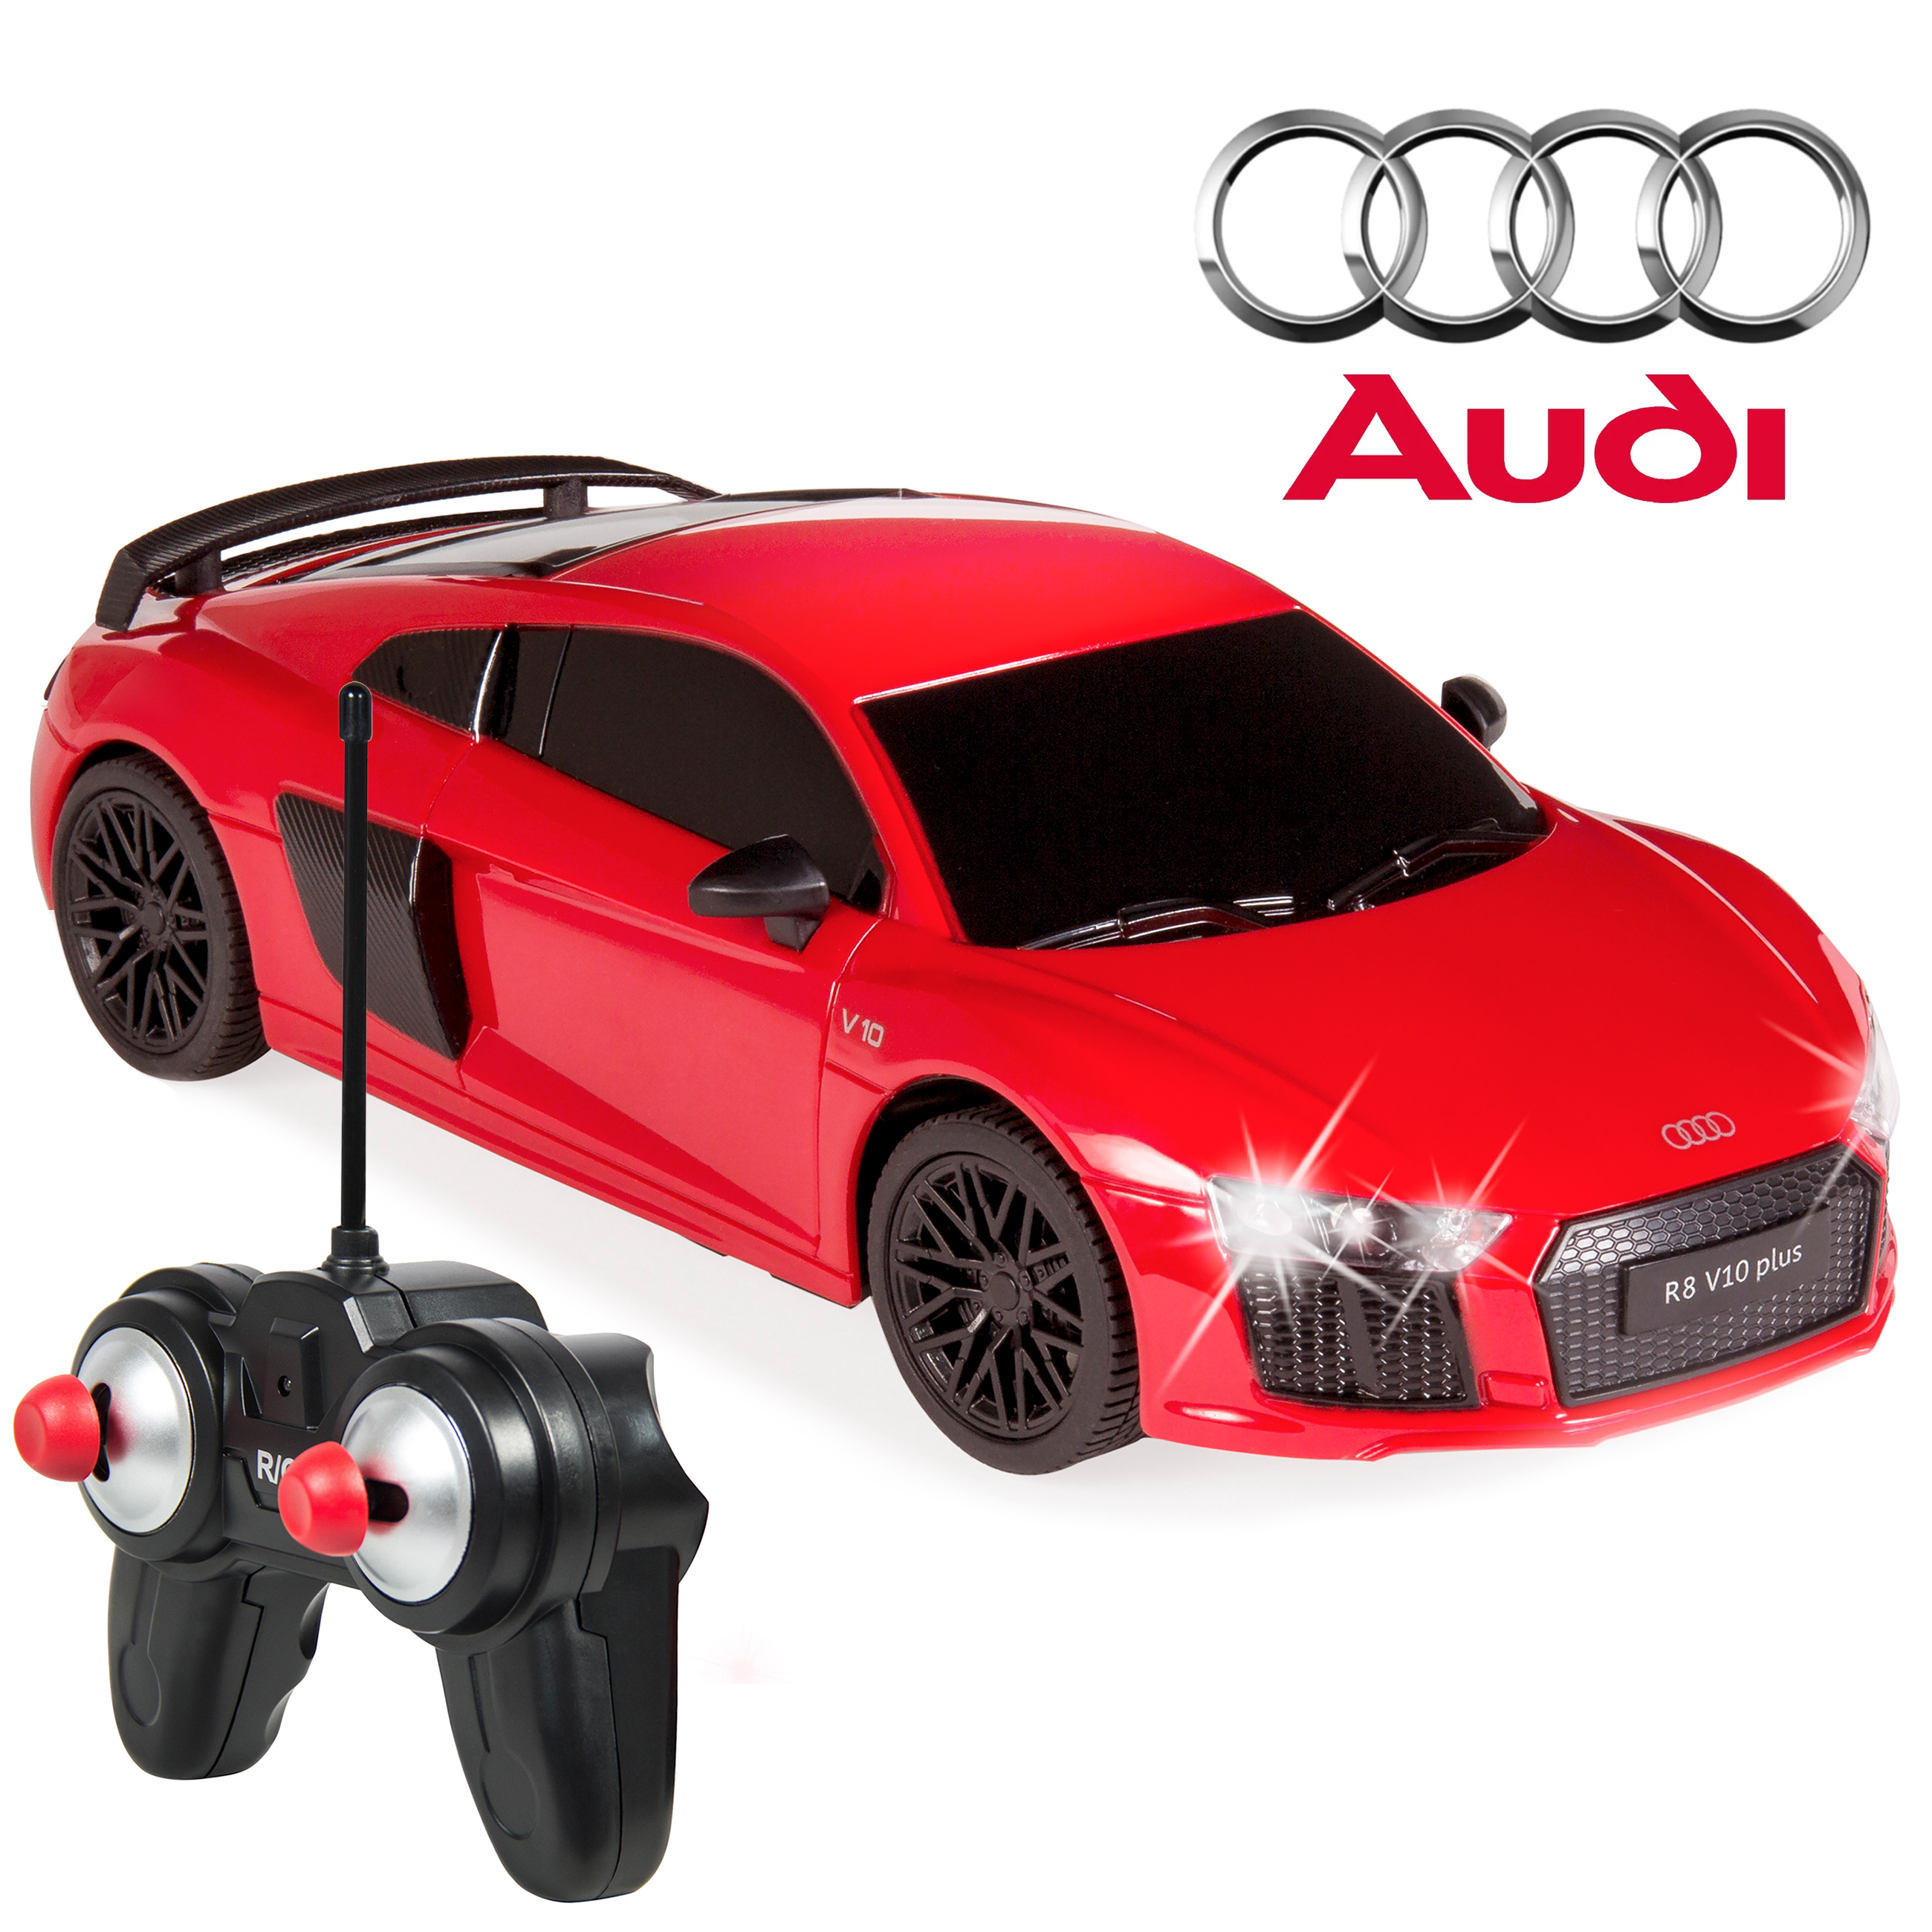 Best Choice Products 1/24 Scale Officially Licensed RC Audi R8 Luxury Sport Remote Control Car w/ Lights - Red